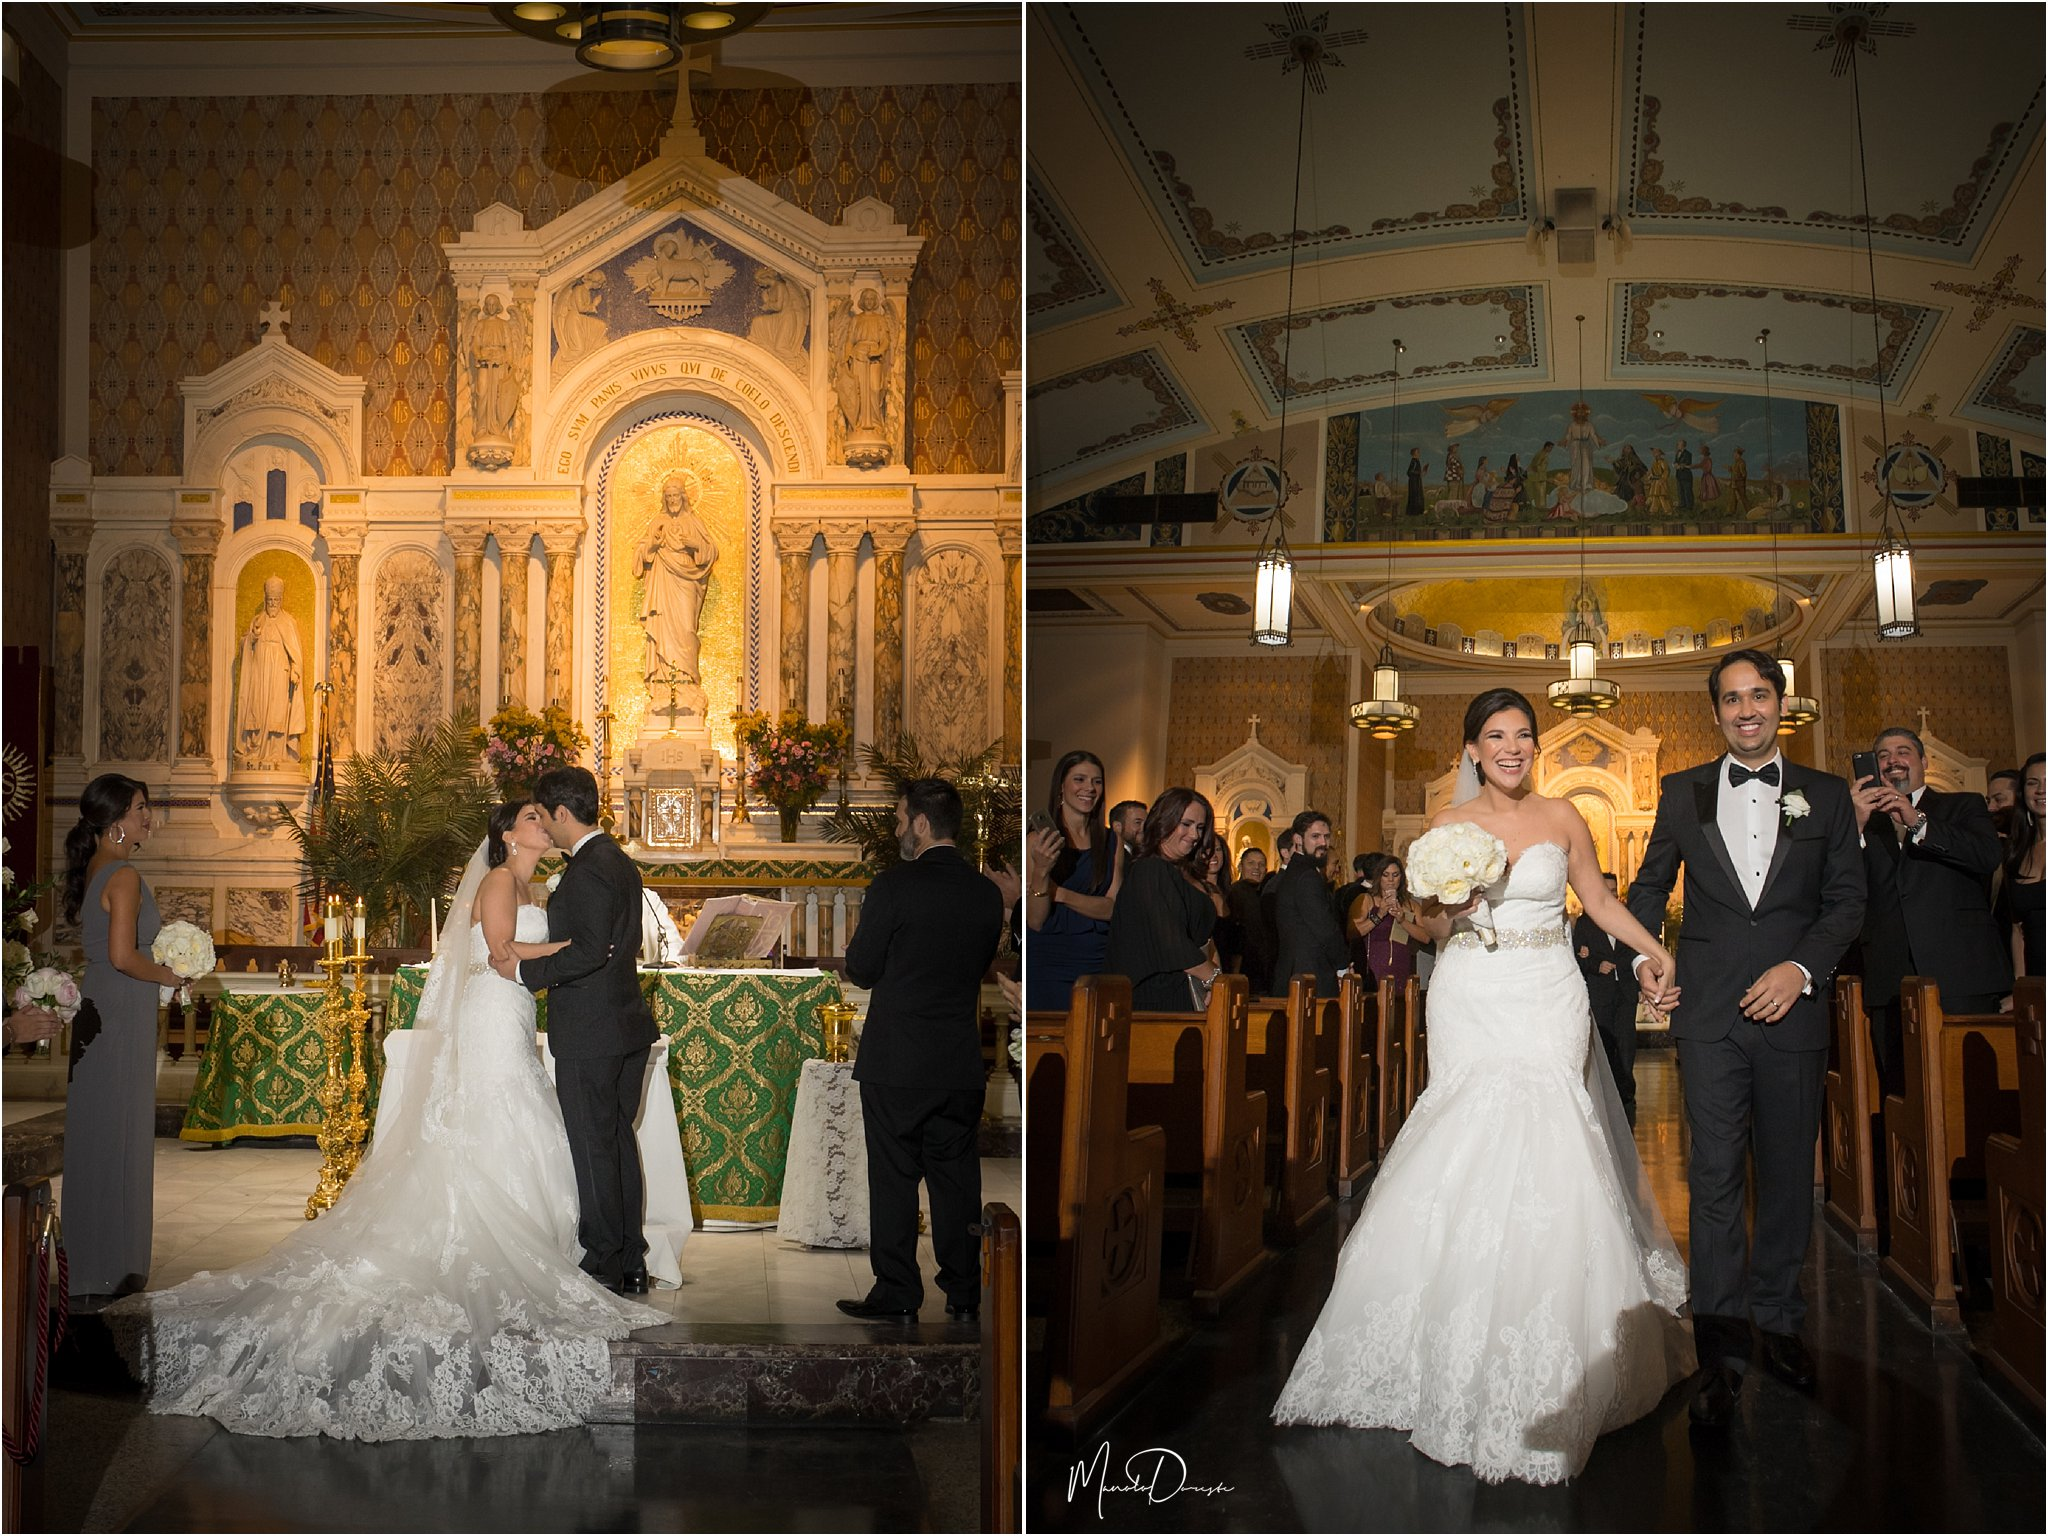 0090_ManoloDoreste_InFocusStudios_Wedding_Family_Photography_Miami_MiamiPhotographer.jpg